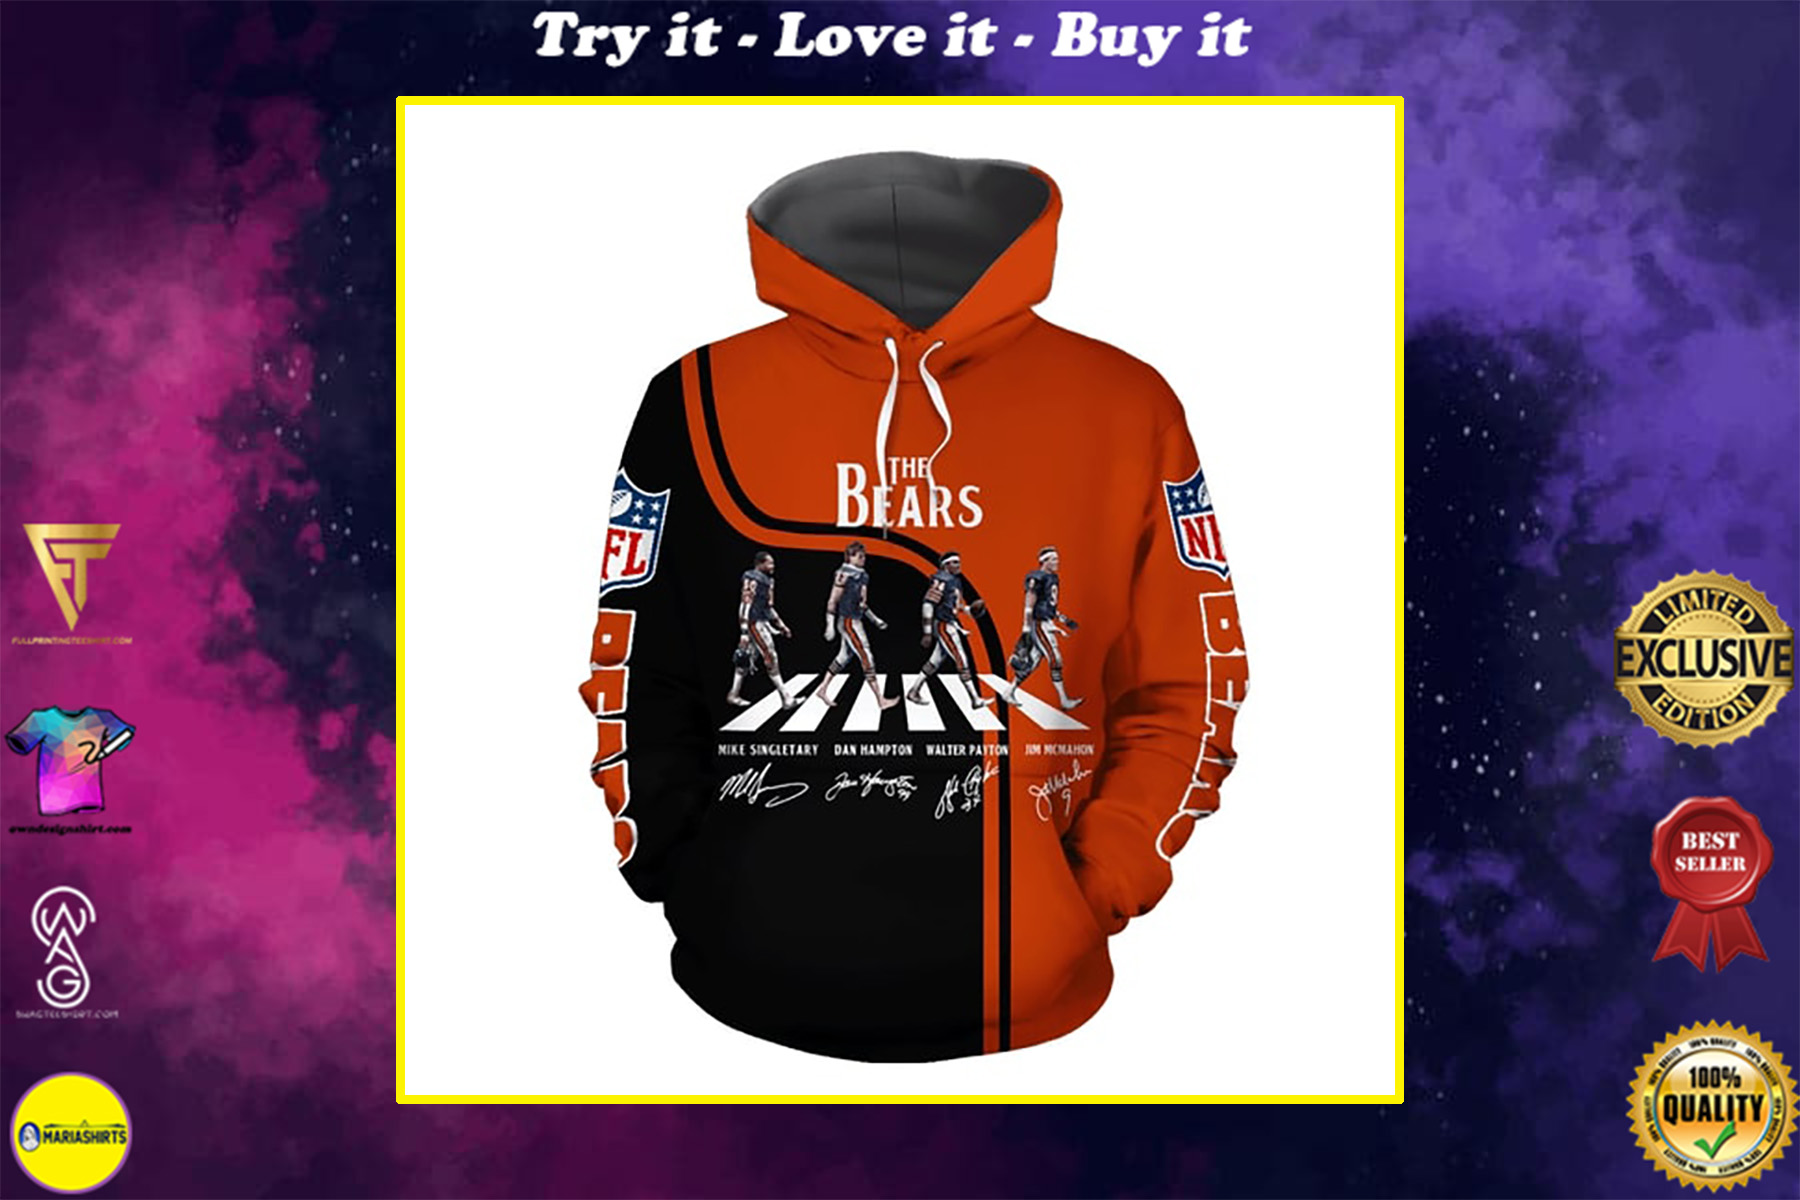 chicago bears abbey road full over printed shirt